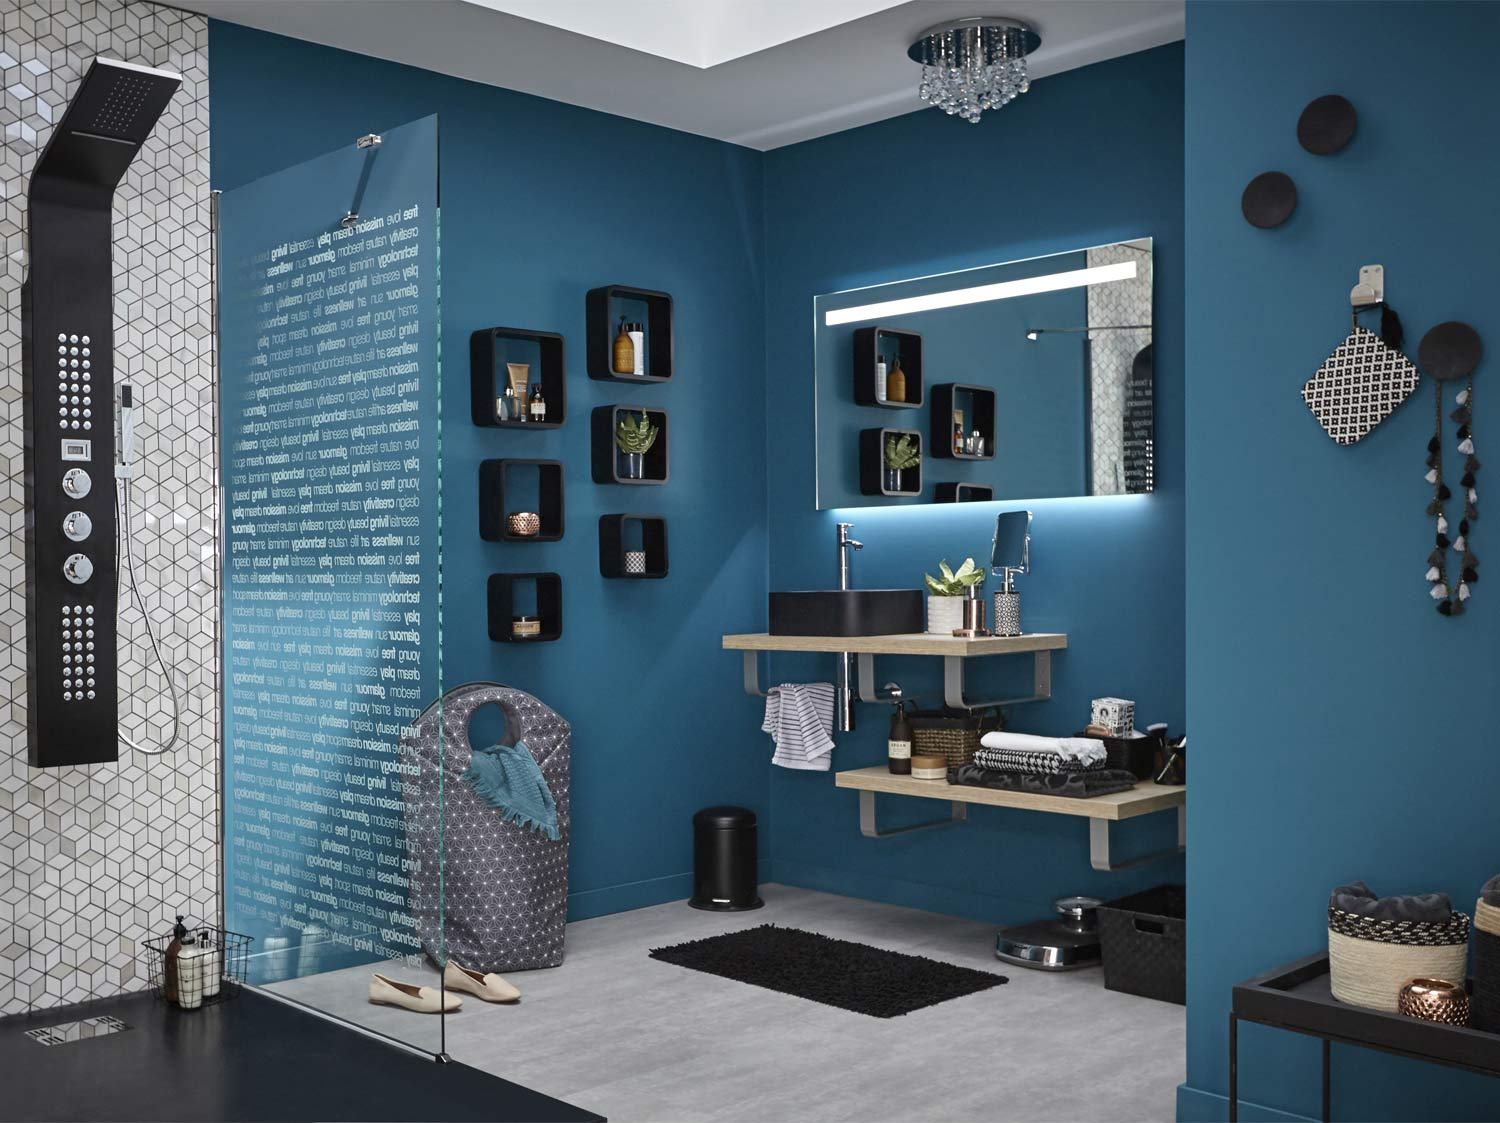 salles de bains leroy merlin good decoration parquet salle bain parquet salle bain with salles. Black Bedroom Furniture Sets. Home Design Ideas